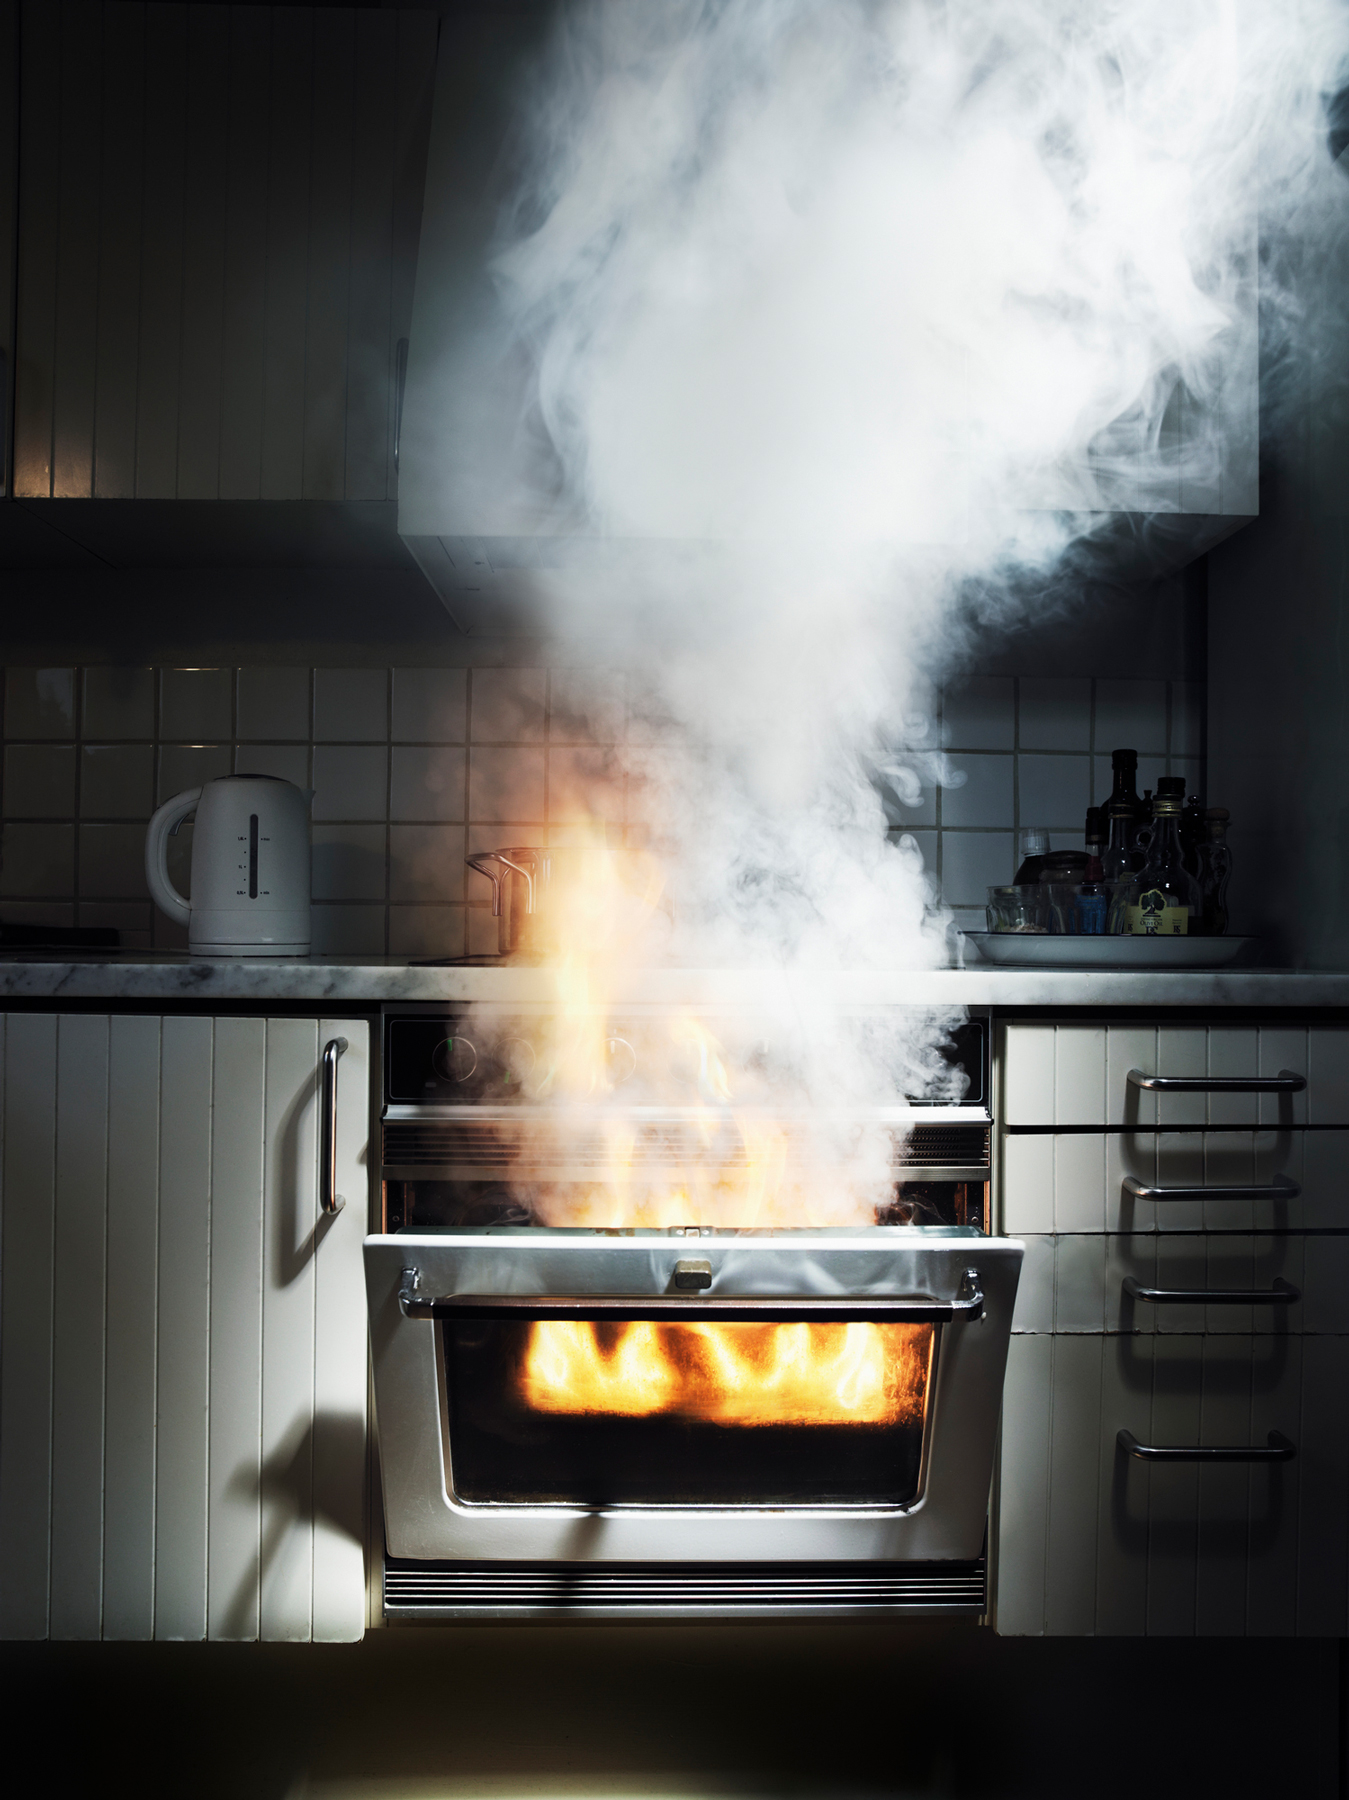 Fire coming out of oven - keep bedroom door closed home fire safety tip